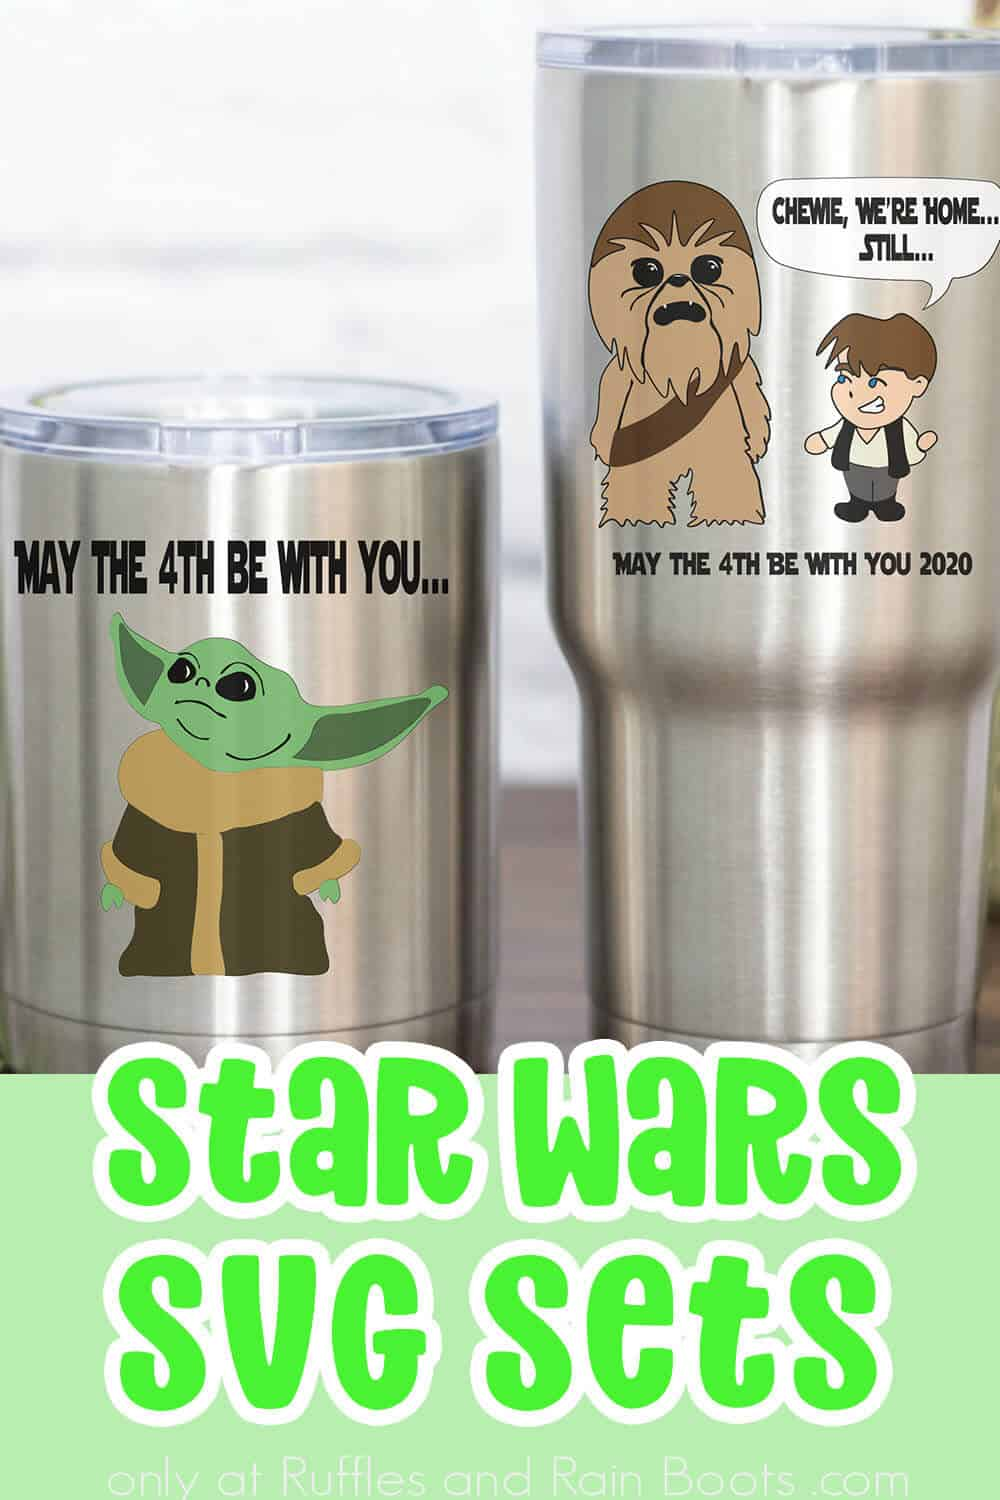 baby yoda, han solo and chewbacca cut files for cricut or silhouette with text which reads star wars svg sets